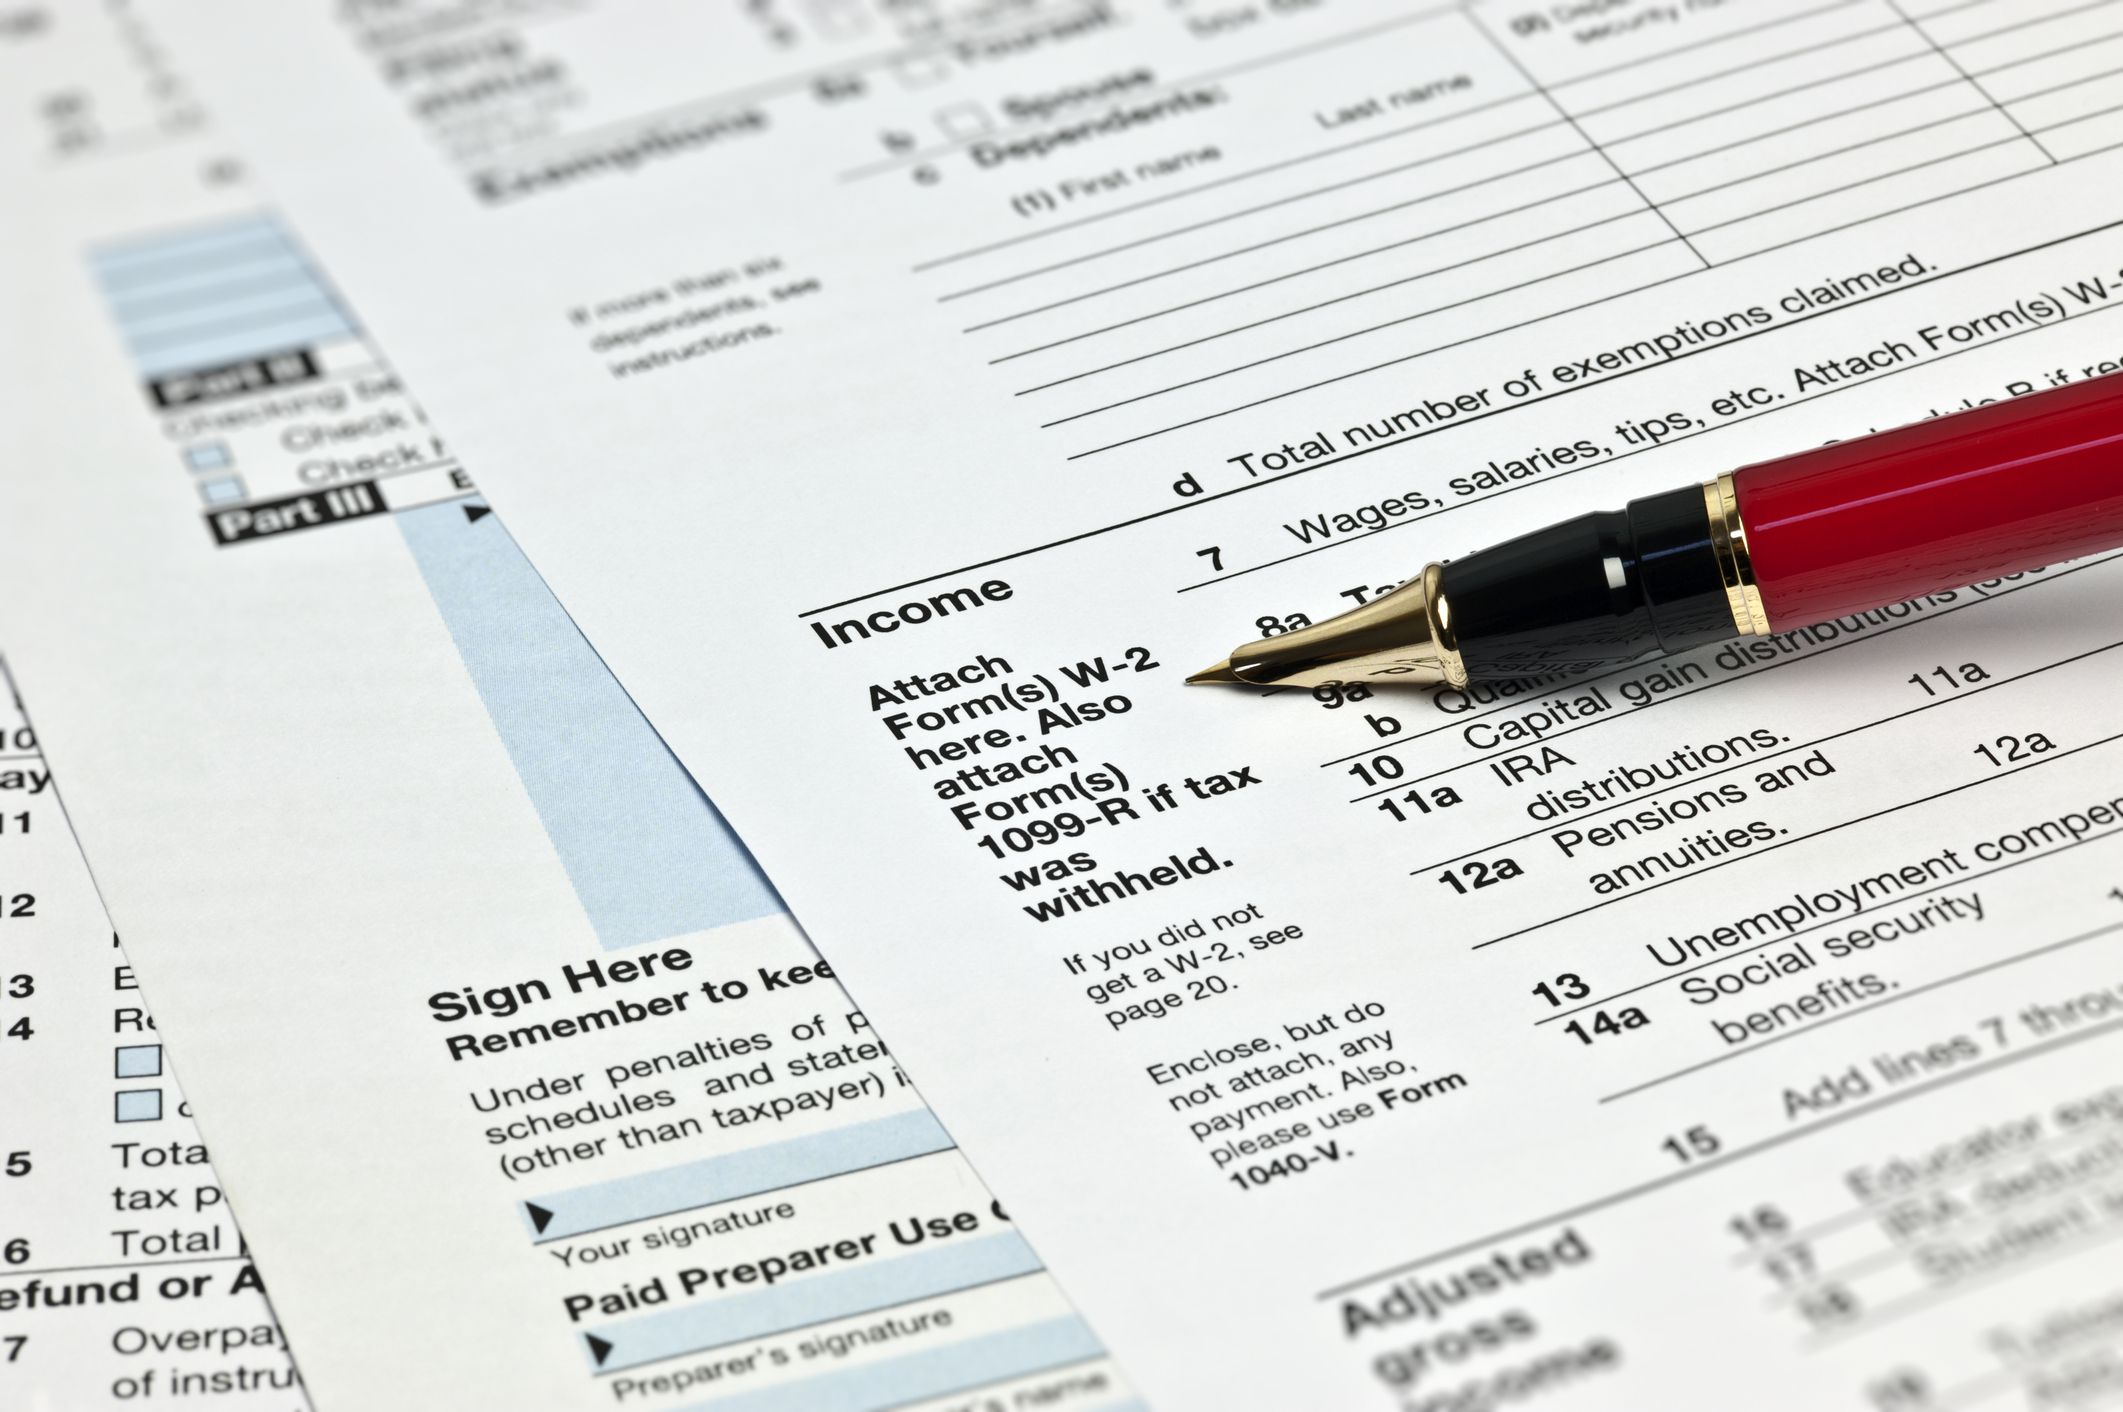 How to Prepare and File an Amended Tax Return